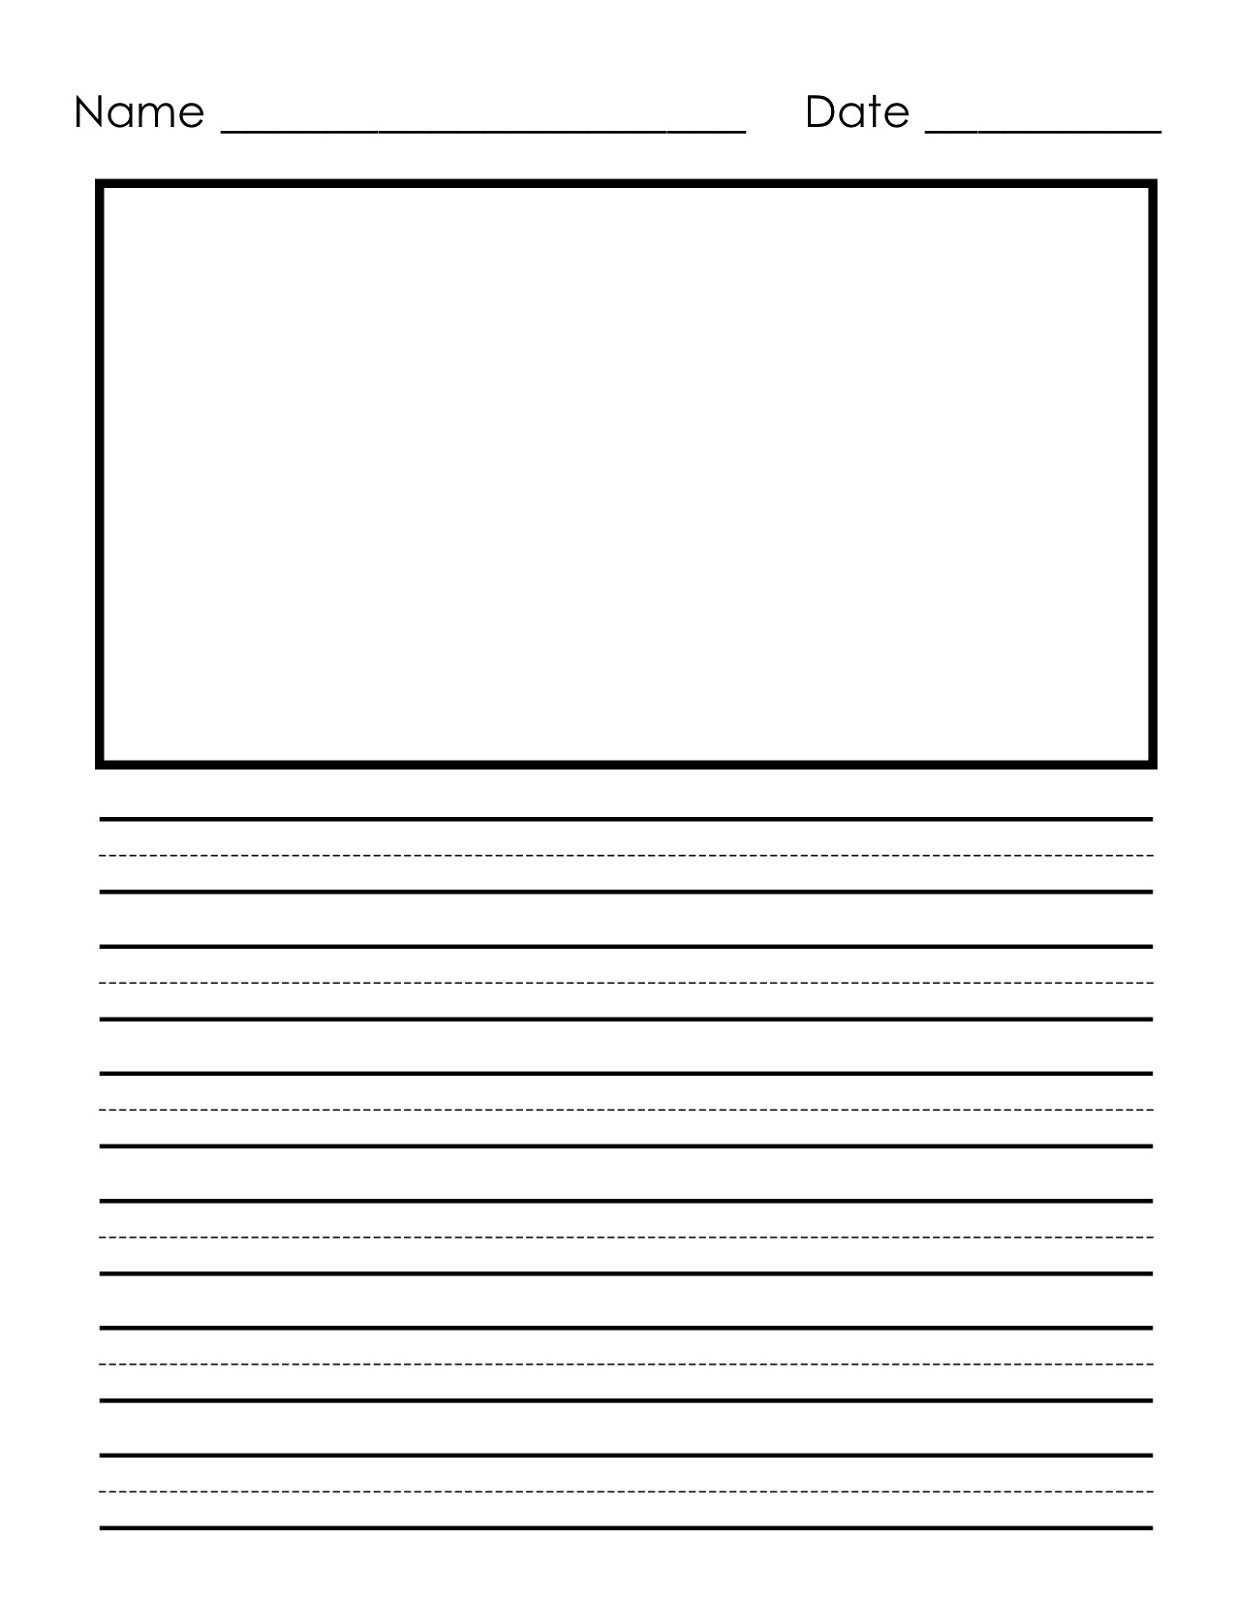 Free handwriting practice for first grade 1st grade for Writing templates for 3rd grade